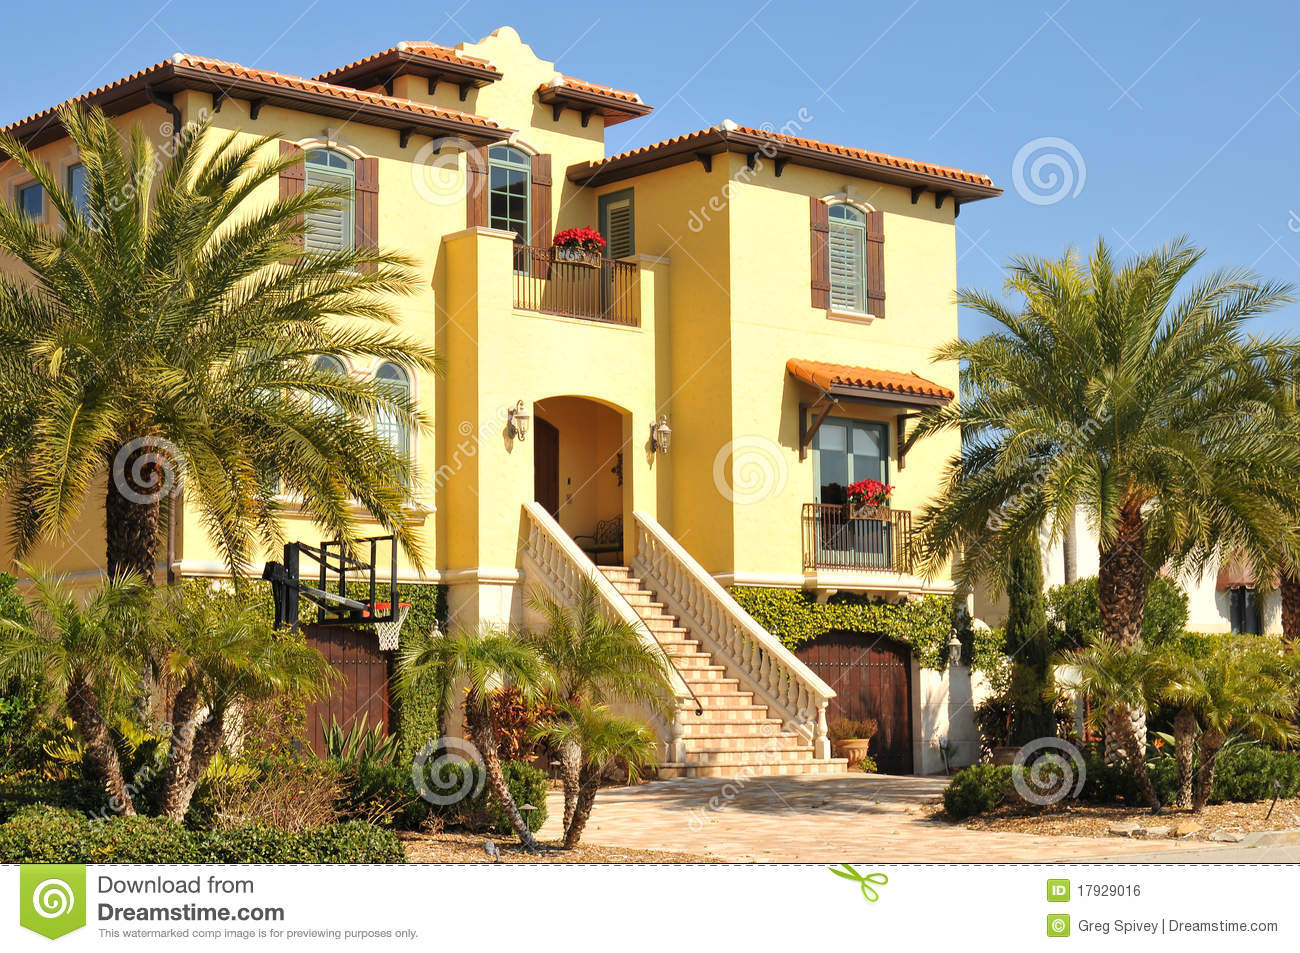 Beautiful three story spanish home in florida royalty free - Maison du monde marseille ...